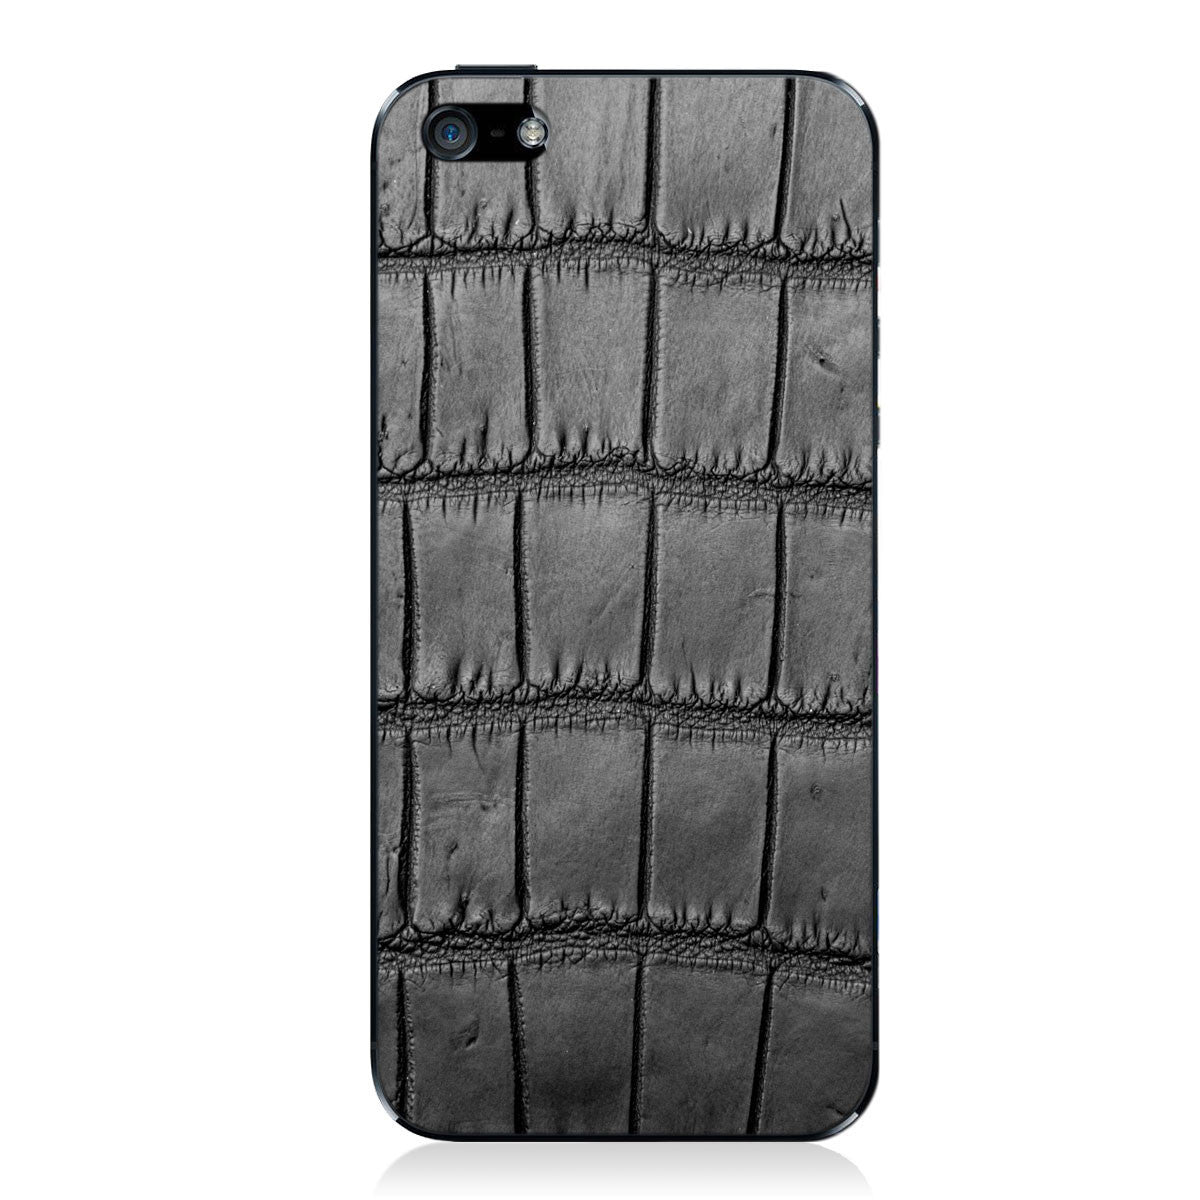 Black Oiled American Alligator iPhone 5 - 5S - SE Leather Skin